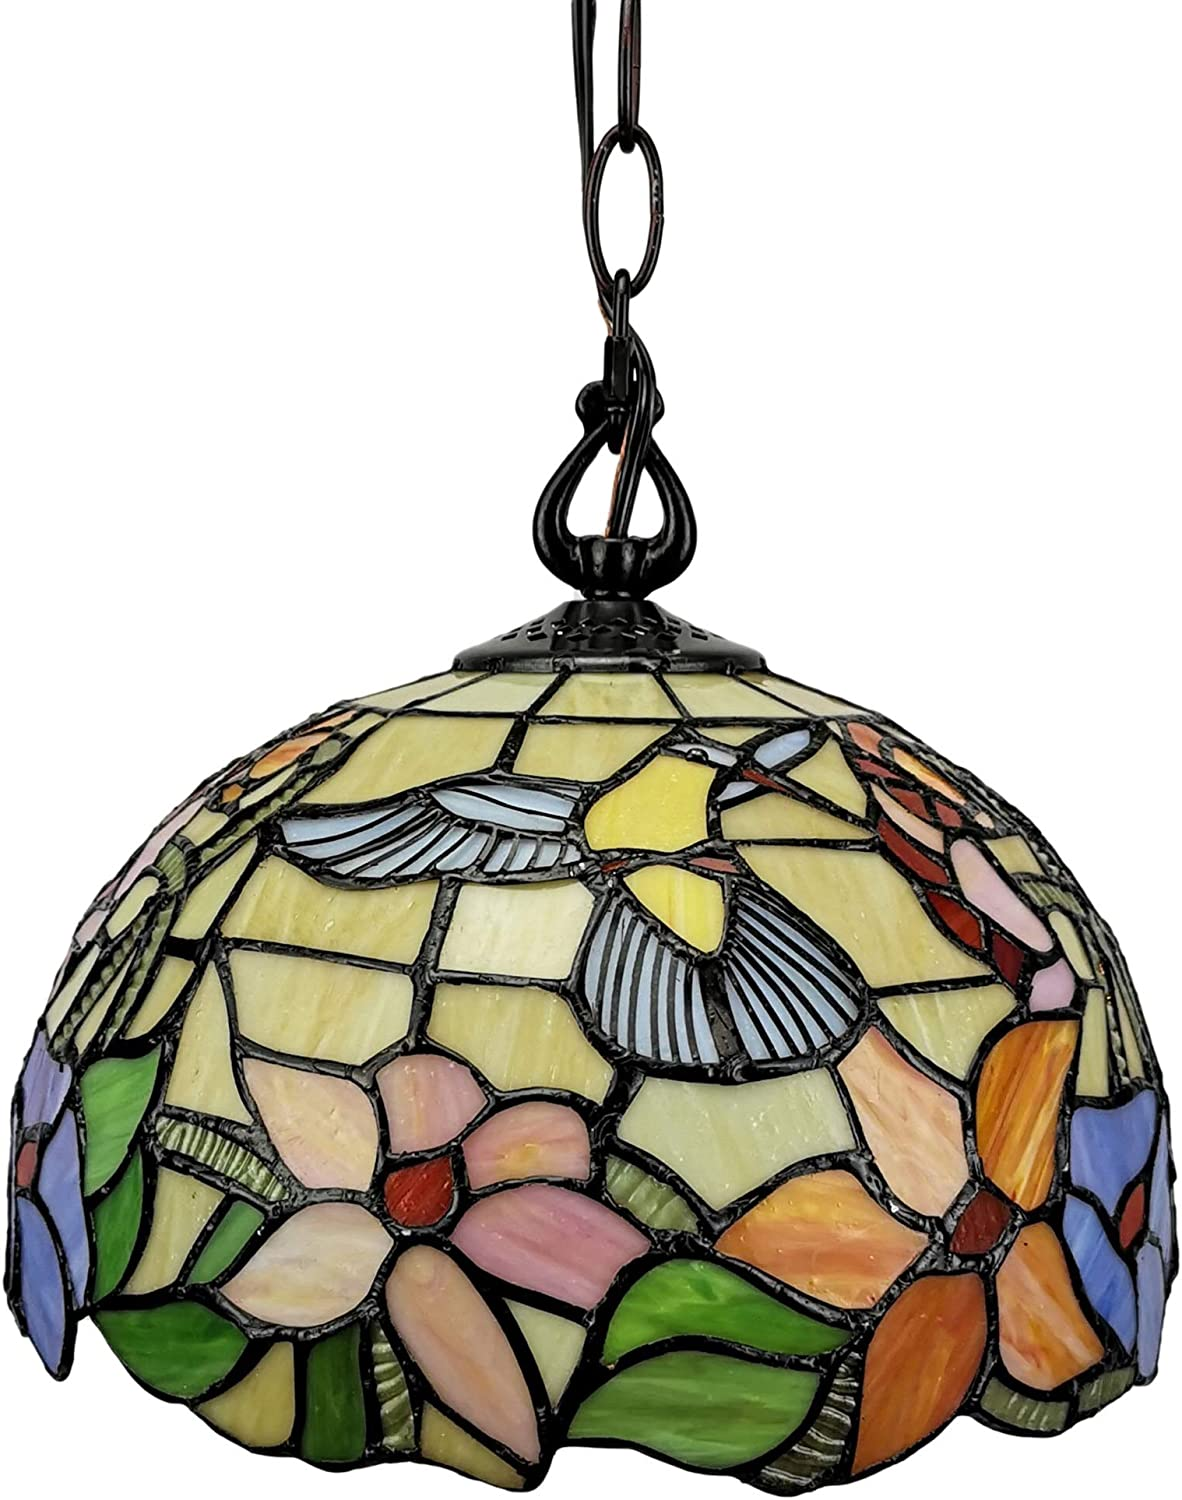 Tiffany Style Hanging Pendant Lamp 12 Wide Stained Glass Shade Yellow Green Red Hummingbird Floral Vintage Light Decor Restaurant Living Dining Room Kitchen Gift AM1082HL12B Amora Lighting